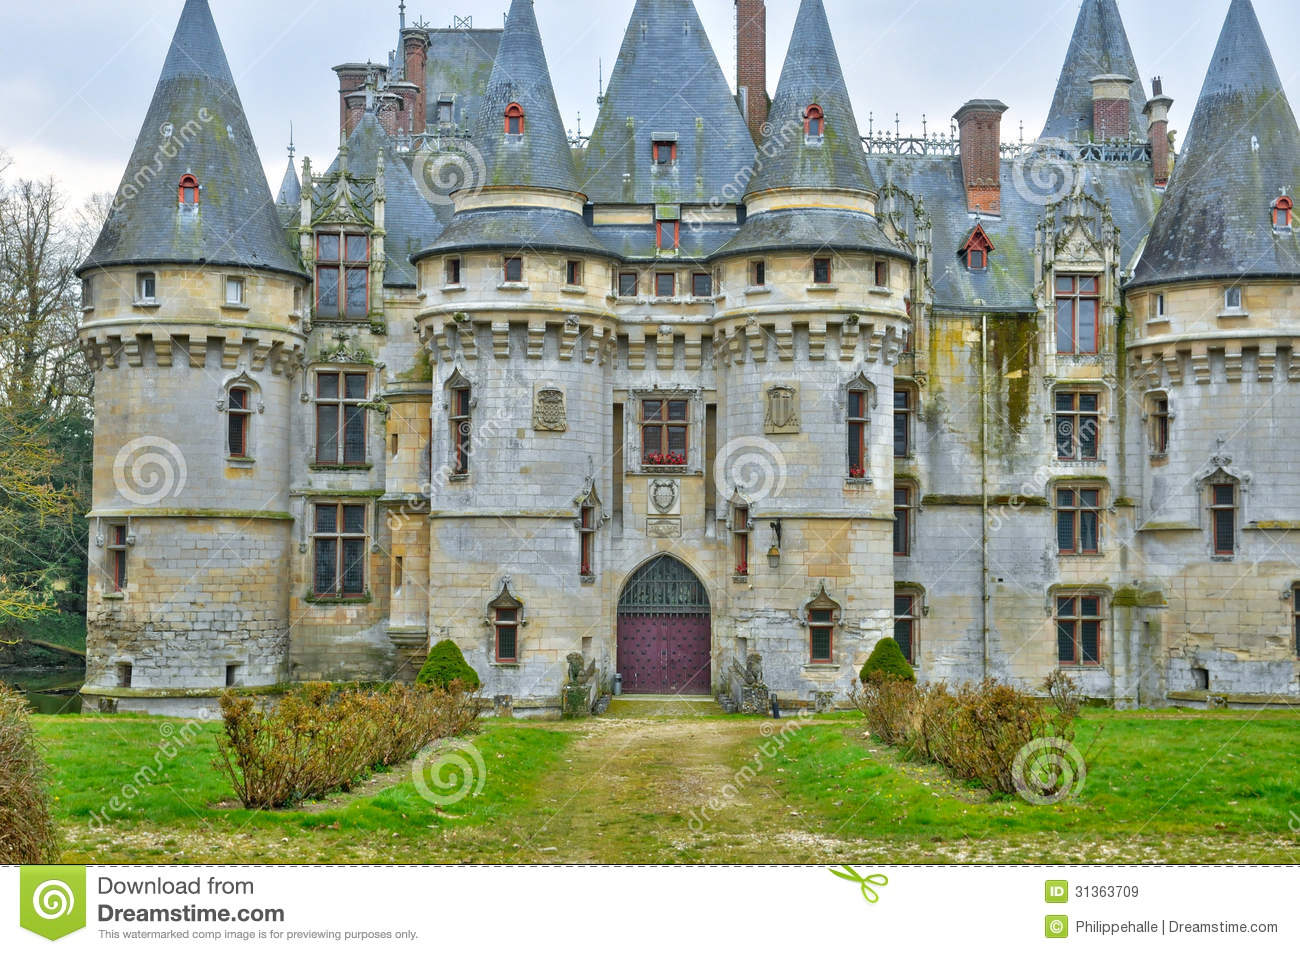 france the castle of vigny in val d oise stock image. Black Bedroom Furniture Sets. Home Design Ideas